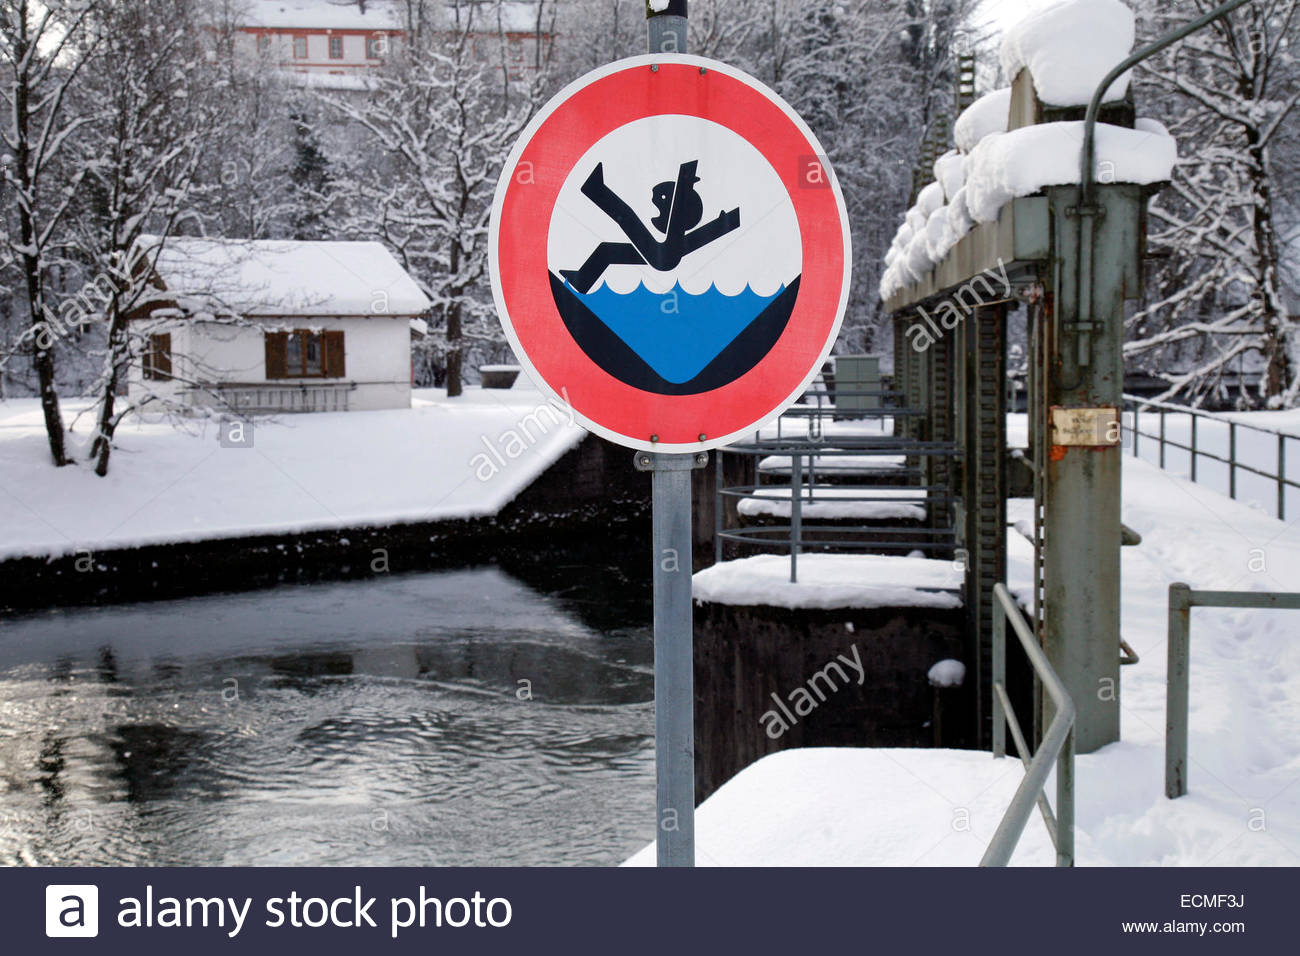 Warning Sign, Danger Of Drowning, Winter, Weir Of The Isar.